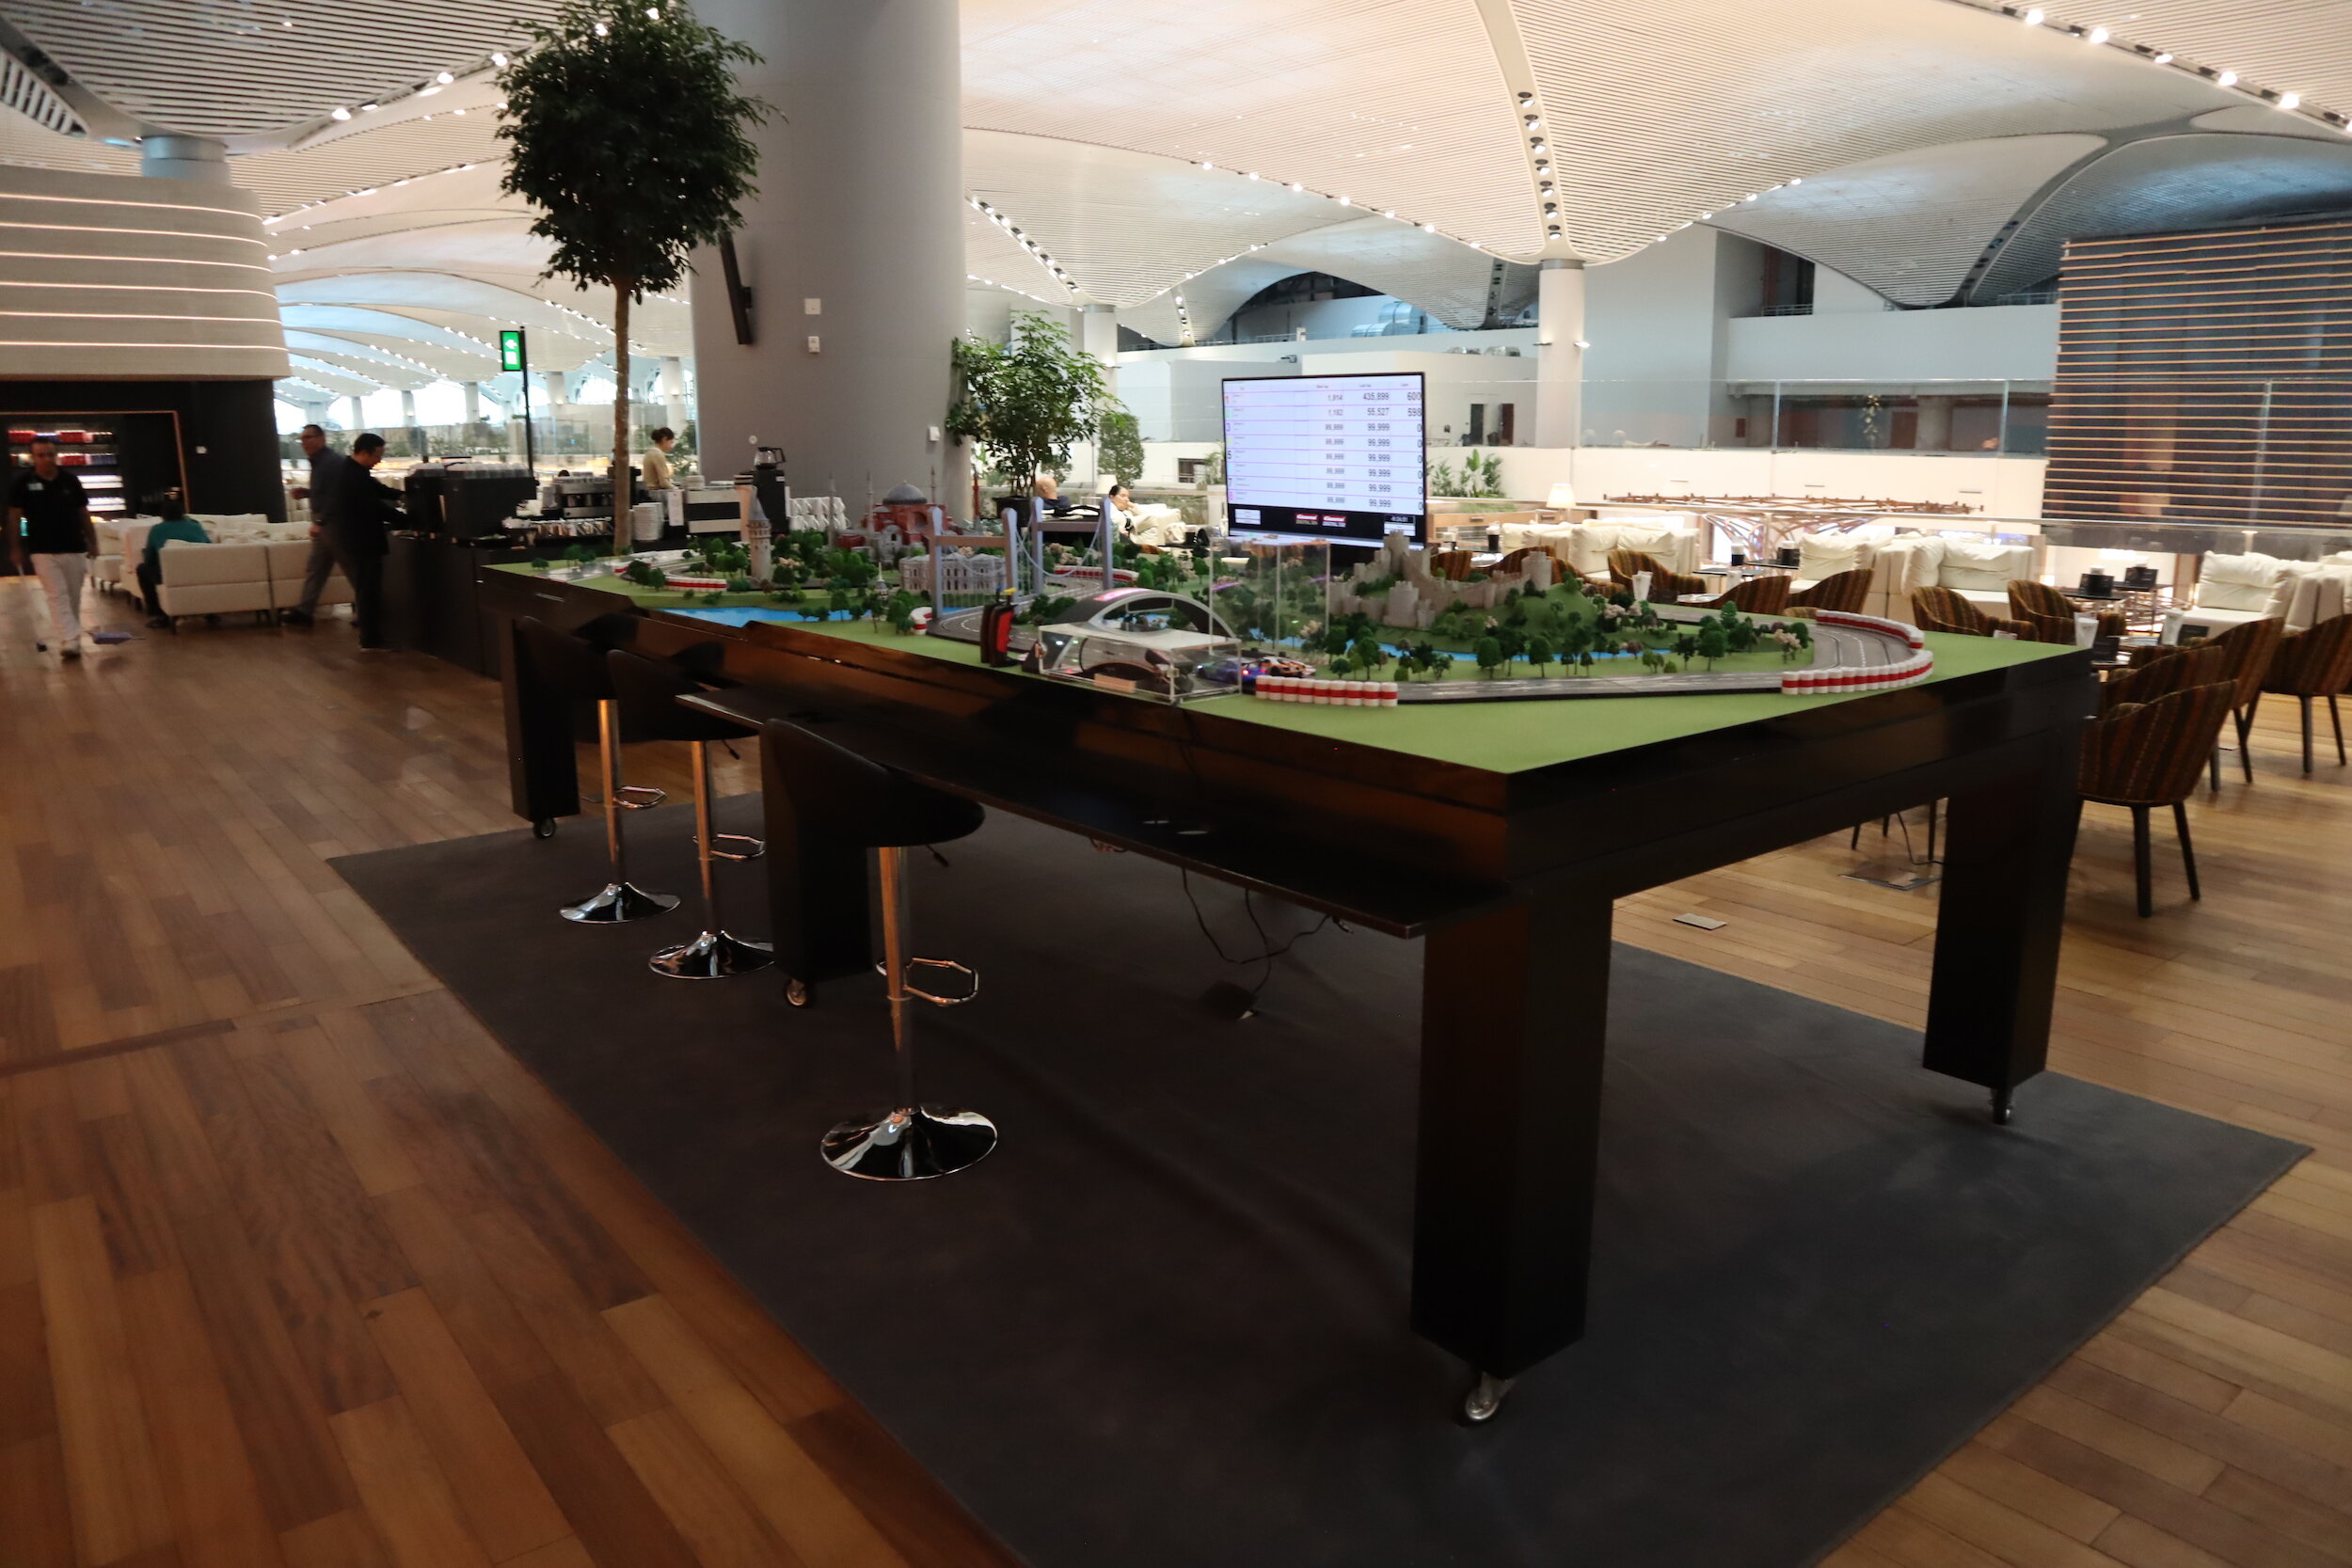 Turkish Airlines Business Lounge Istanbul – Model car racetrack